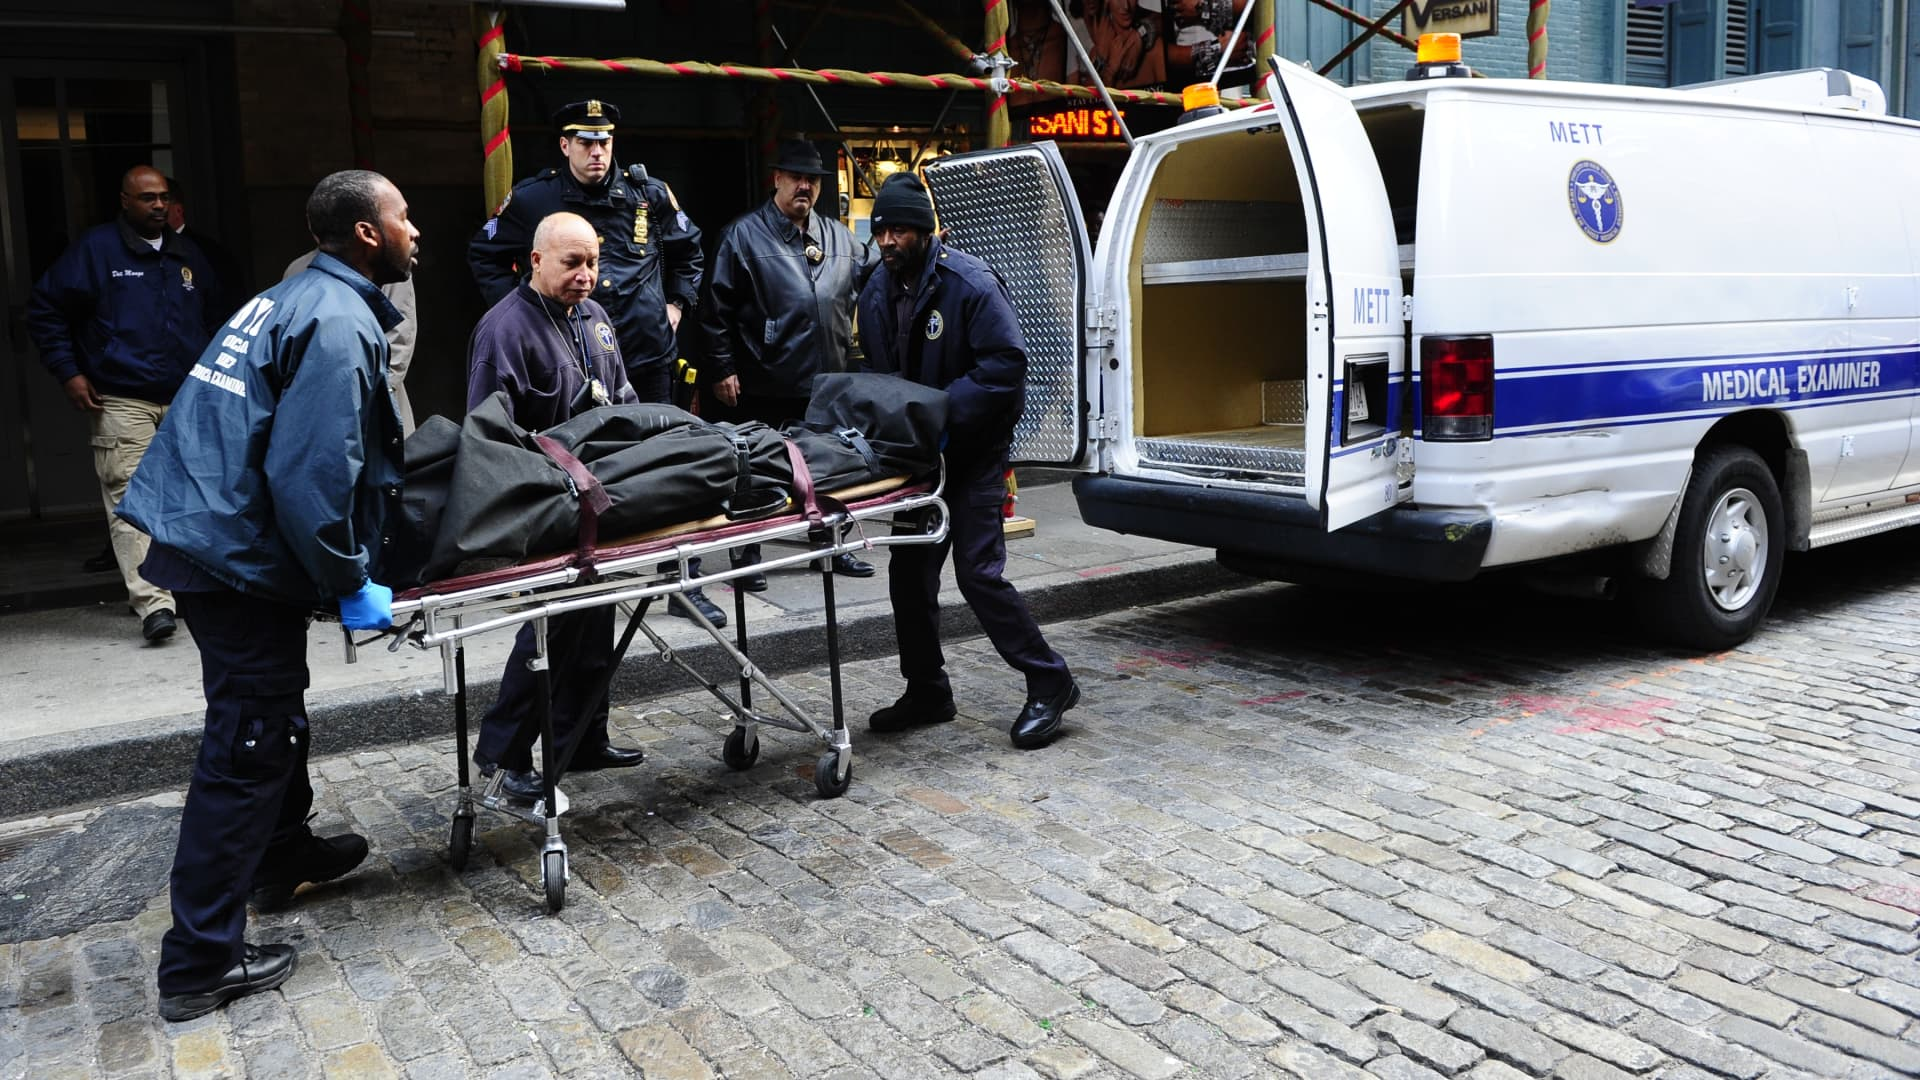 Medical examiners remove the body of Mark Madoff from his New York apartment on Dec. 11, 2010.